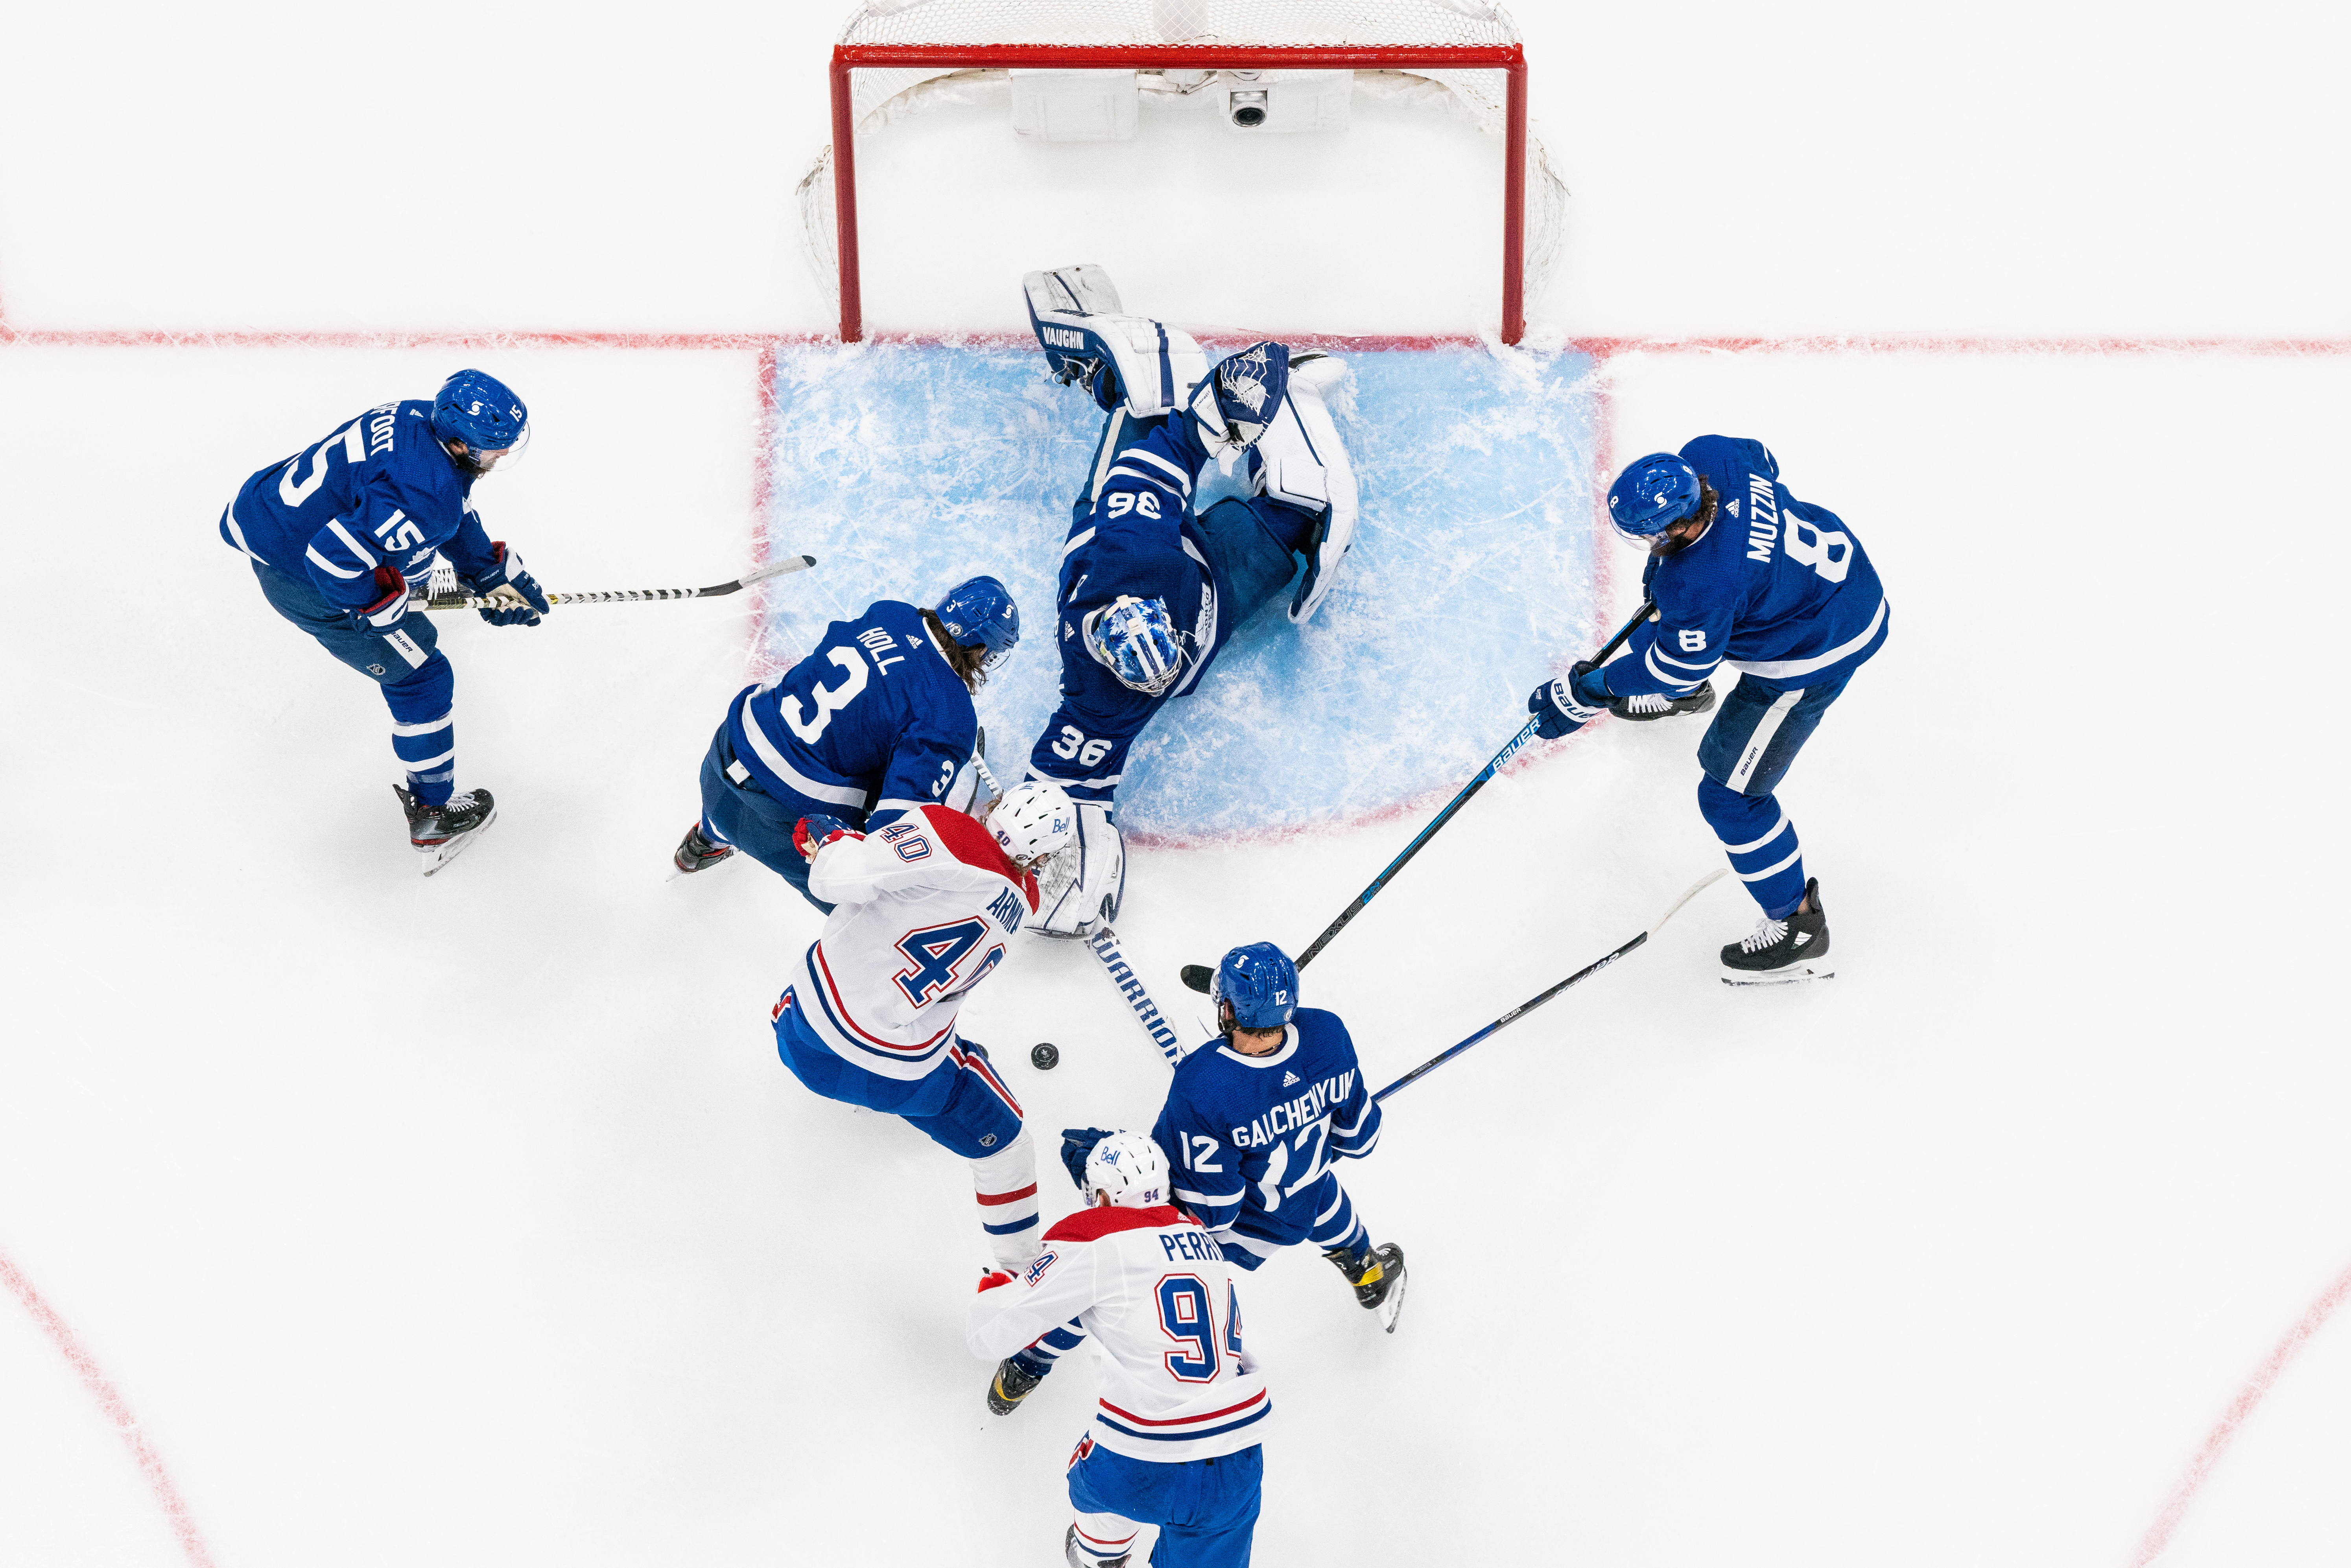 Jack Campbell #36 of the Toronto Maple Leafs attempts to clear the puck against Joel Armia #40 of the Montreal Canadiens during the third period in Game Five of the First Round of the 2021 Stanley Cup Playoffs at the Scotiabank Arena on May 27, 2021 in Toronto, Ontario, Canada.